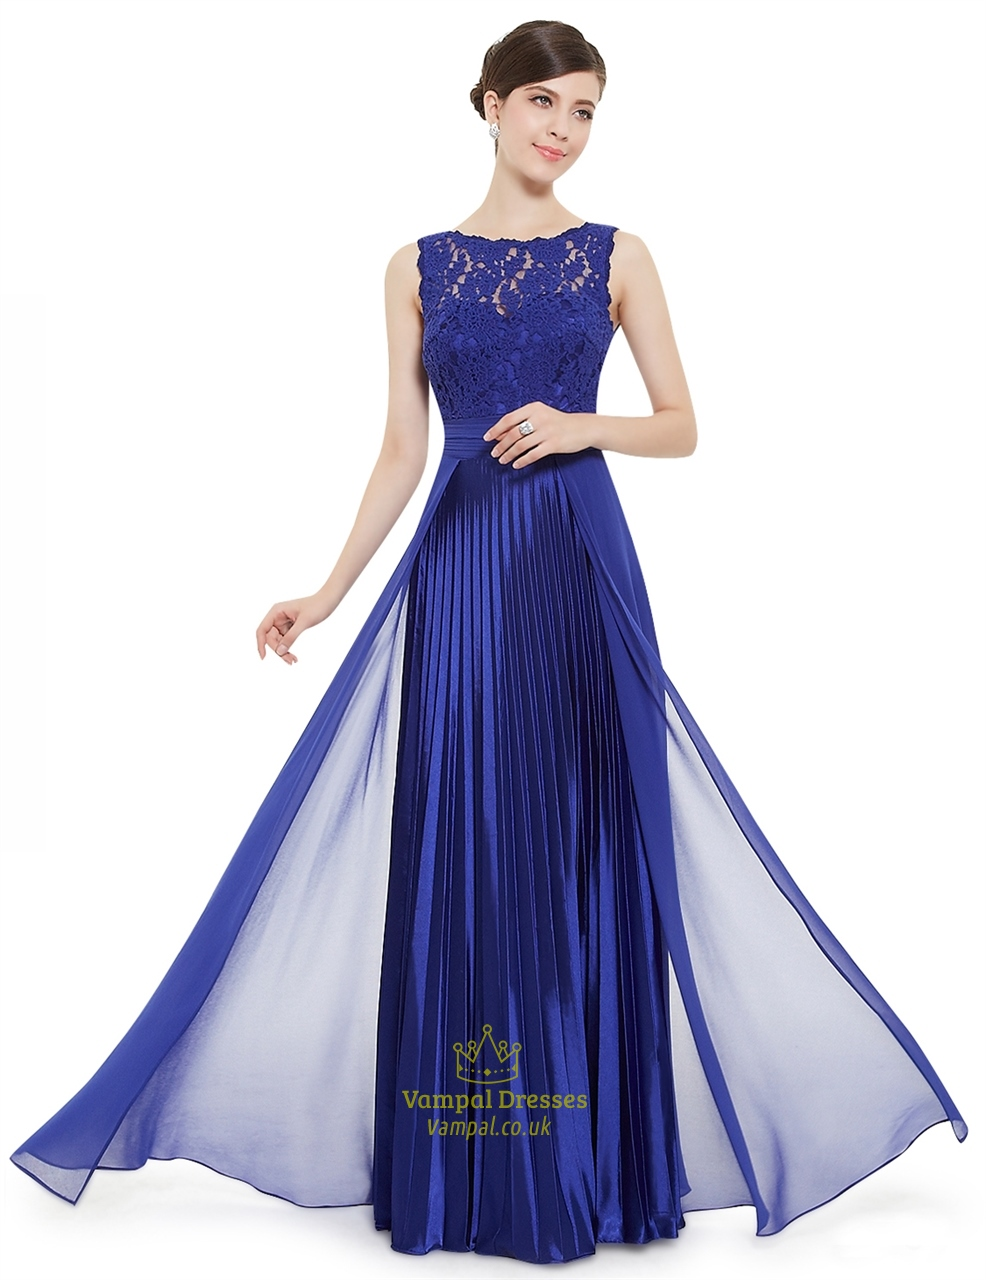 Elegant royal blue lace illusion neckline chiffon long bridesmaid elegant royal blue lace illusion neckline chiffon long bridesmaid dress ombrellifo Gallery